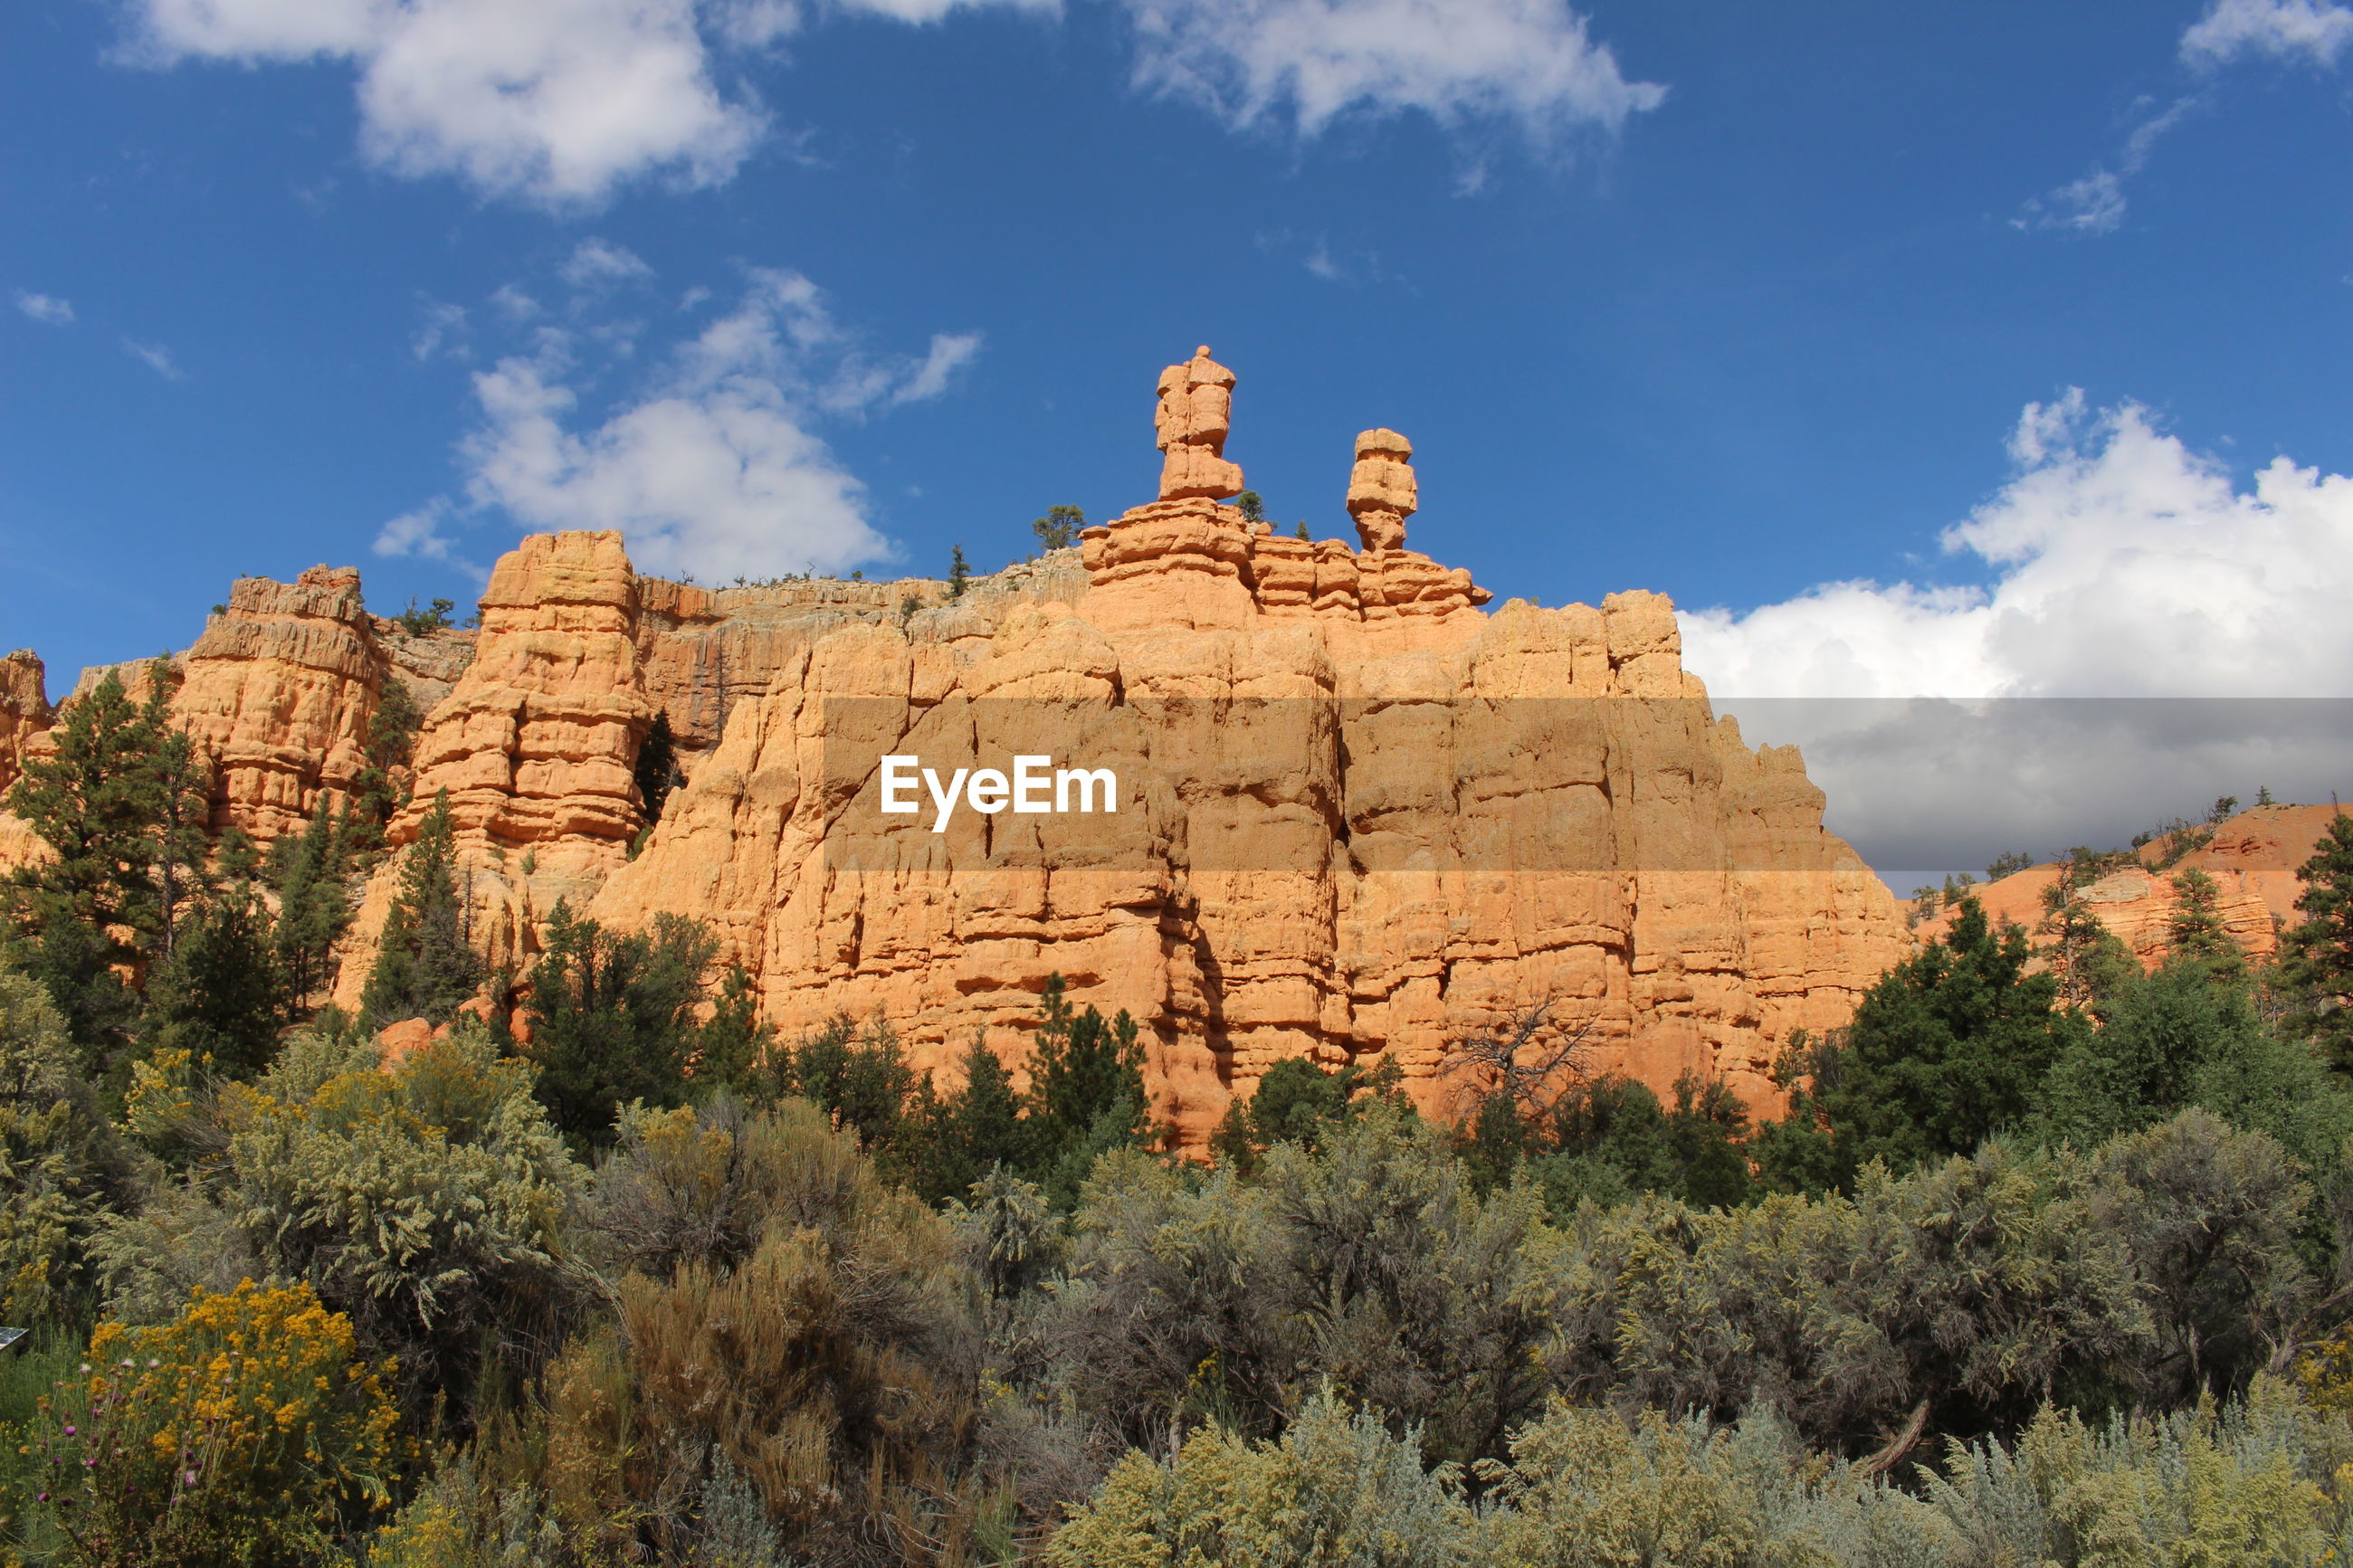 LOW ANGLE VIEW OF ROCK FORMATIONS ON LANDSCAPE